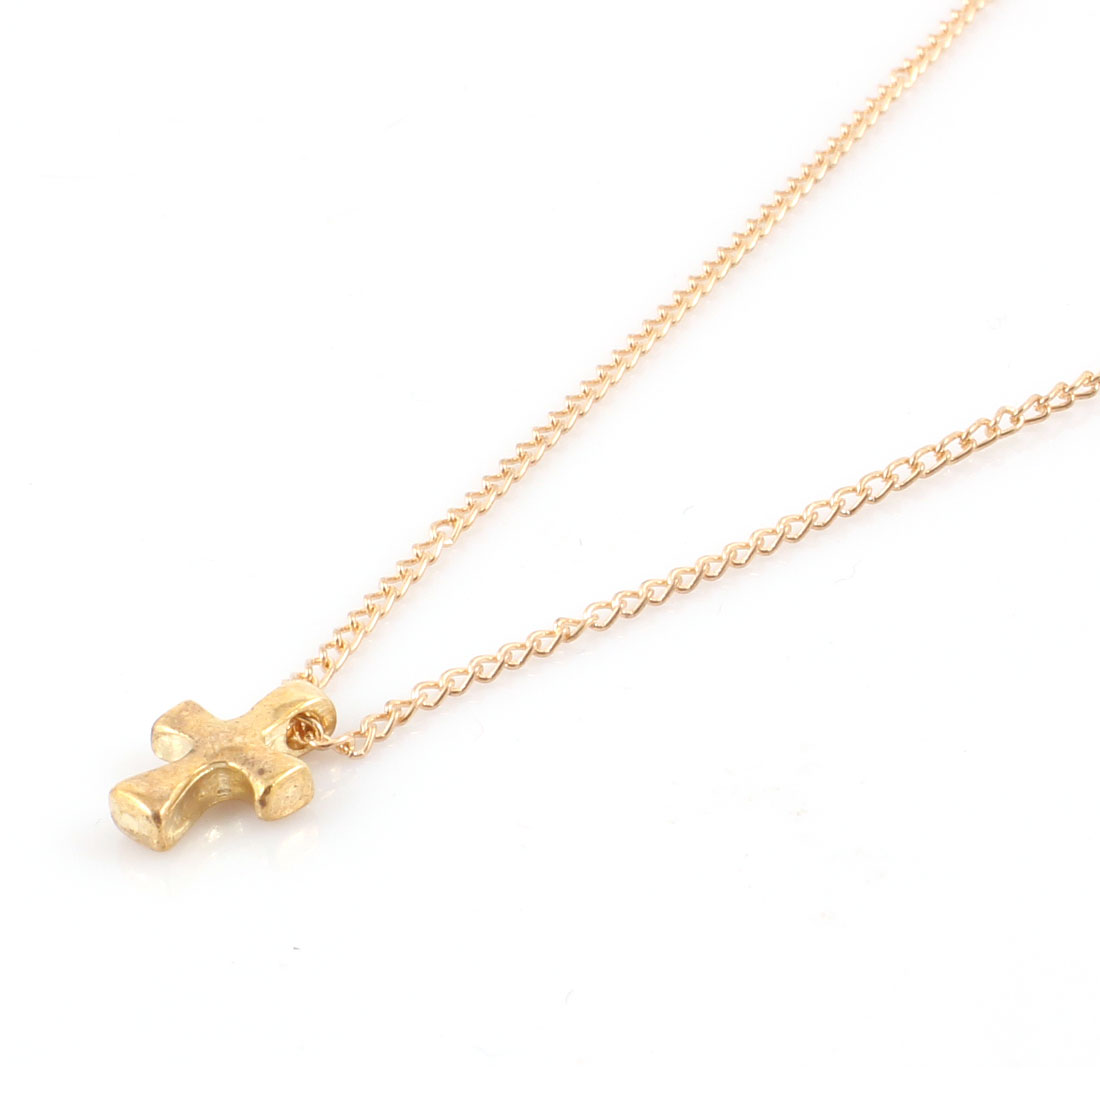 Cross Shape Lobster Closure Bling Gold Plated Necklace Choker for Ladies